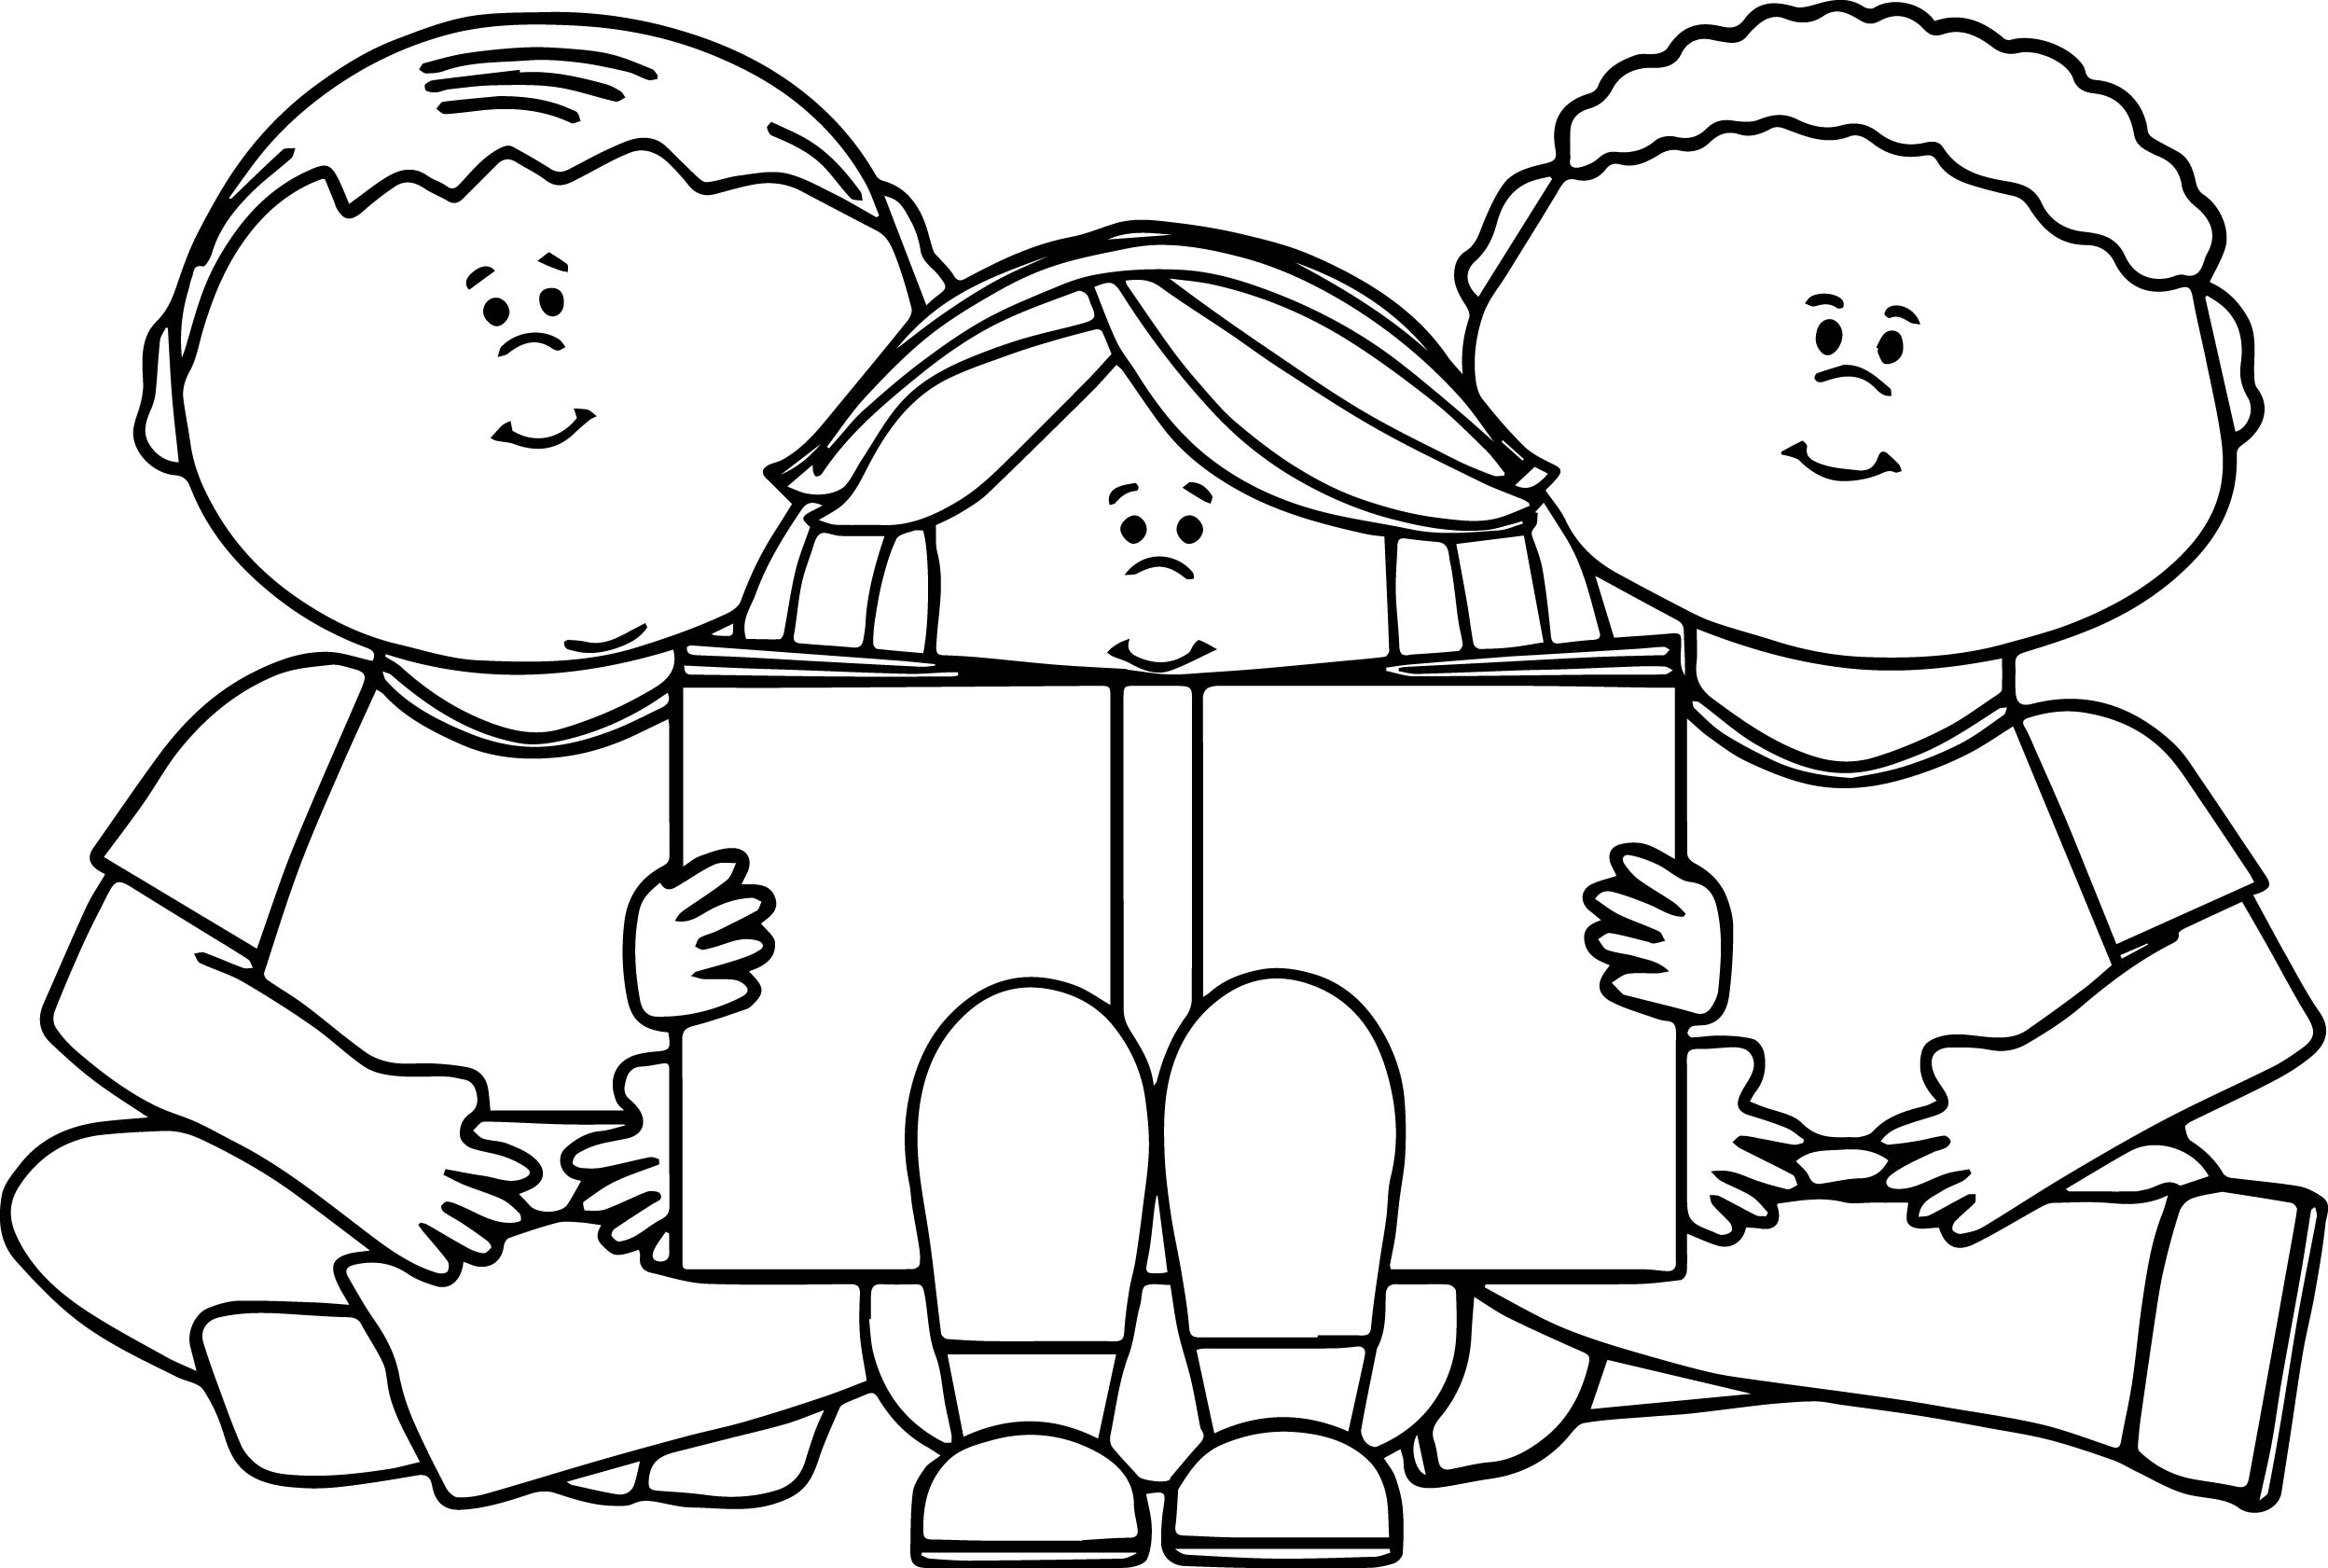 book coloring pages - photo#19